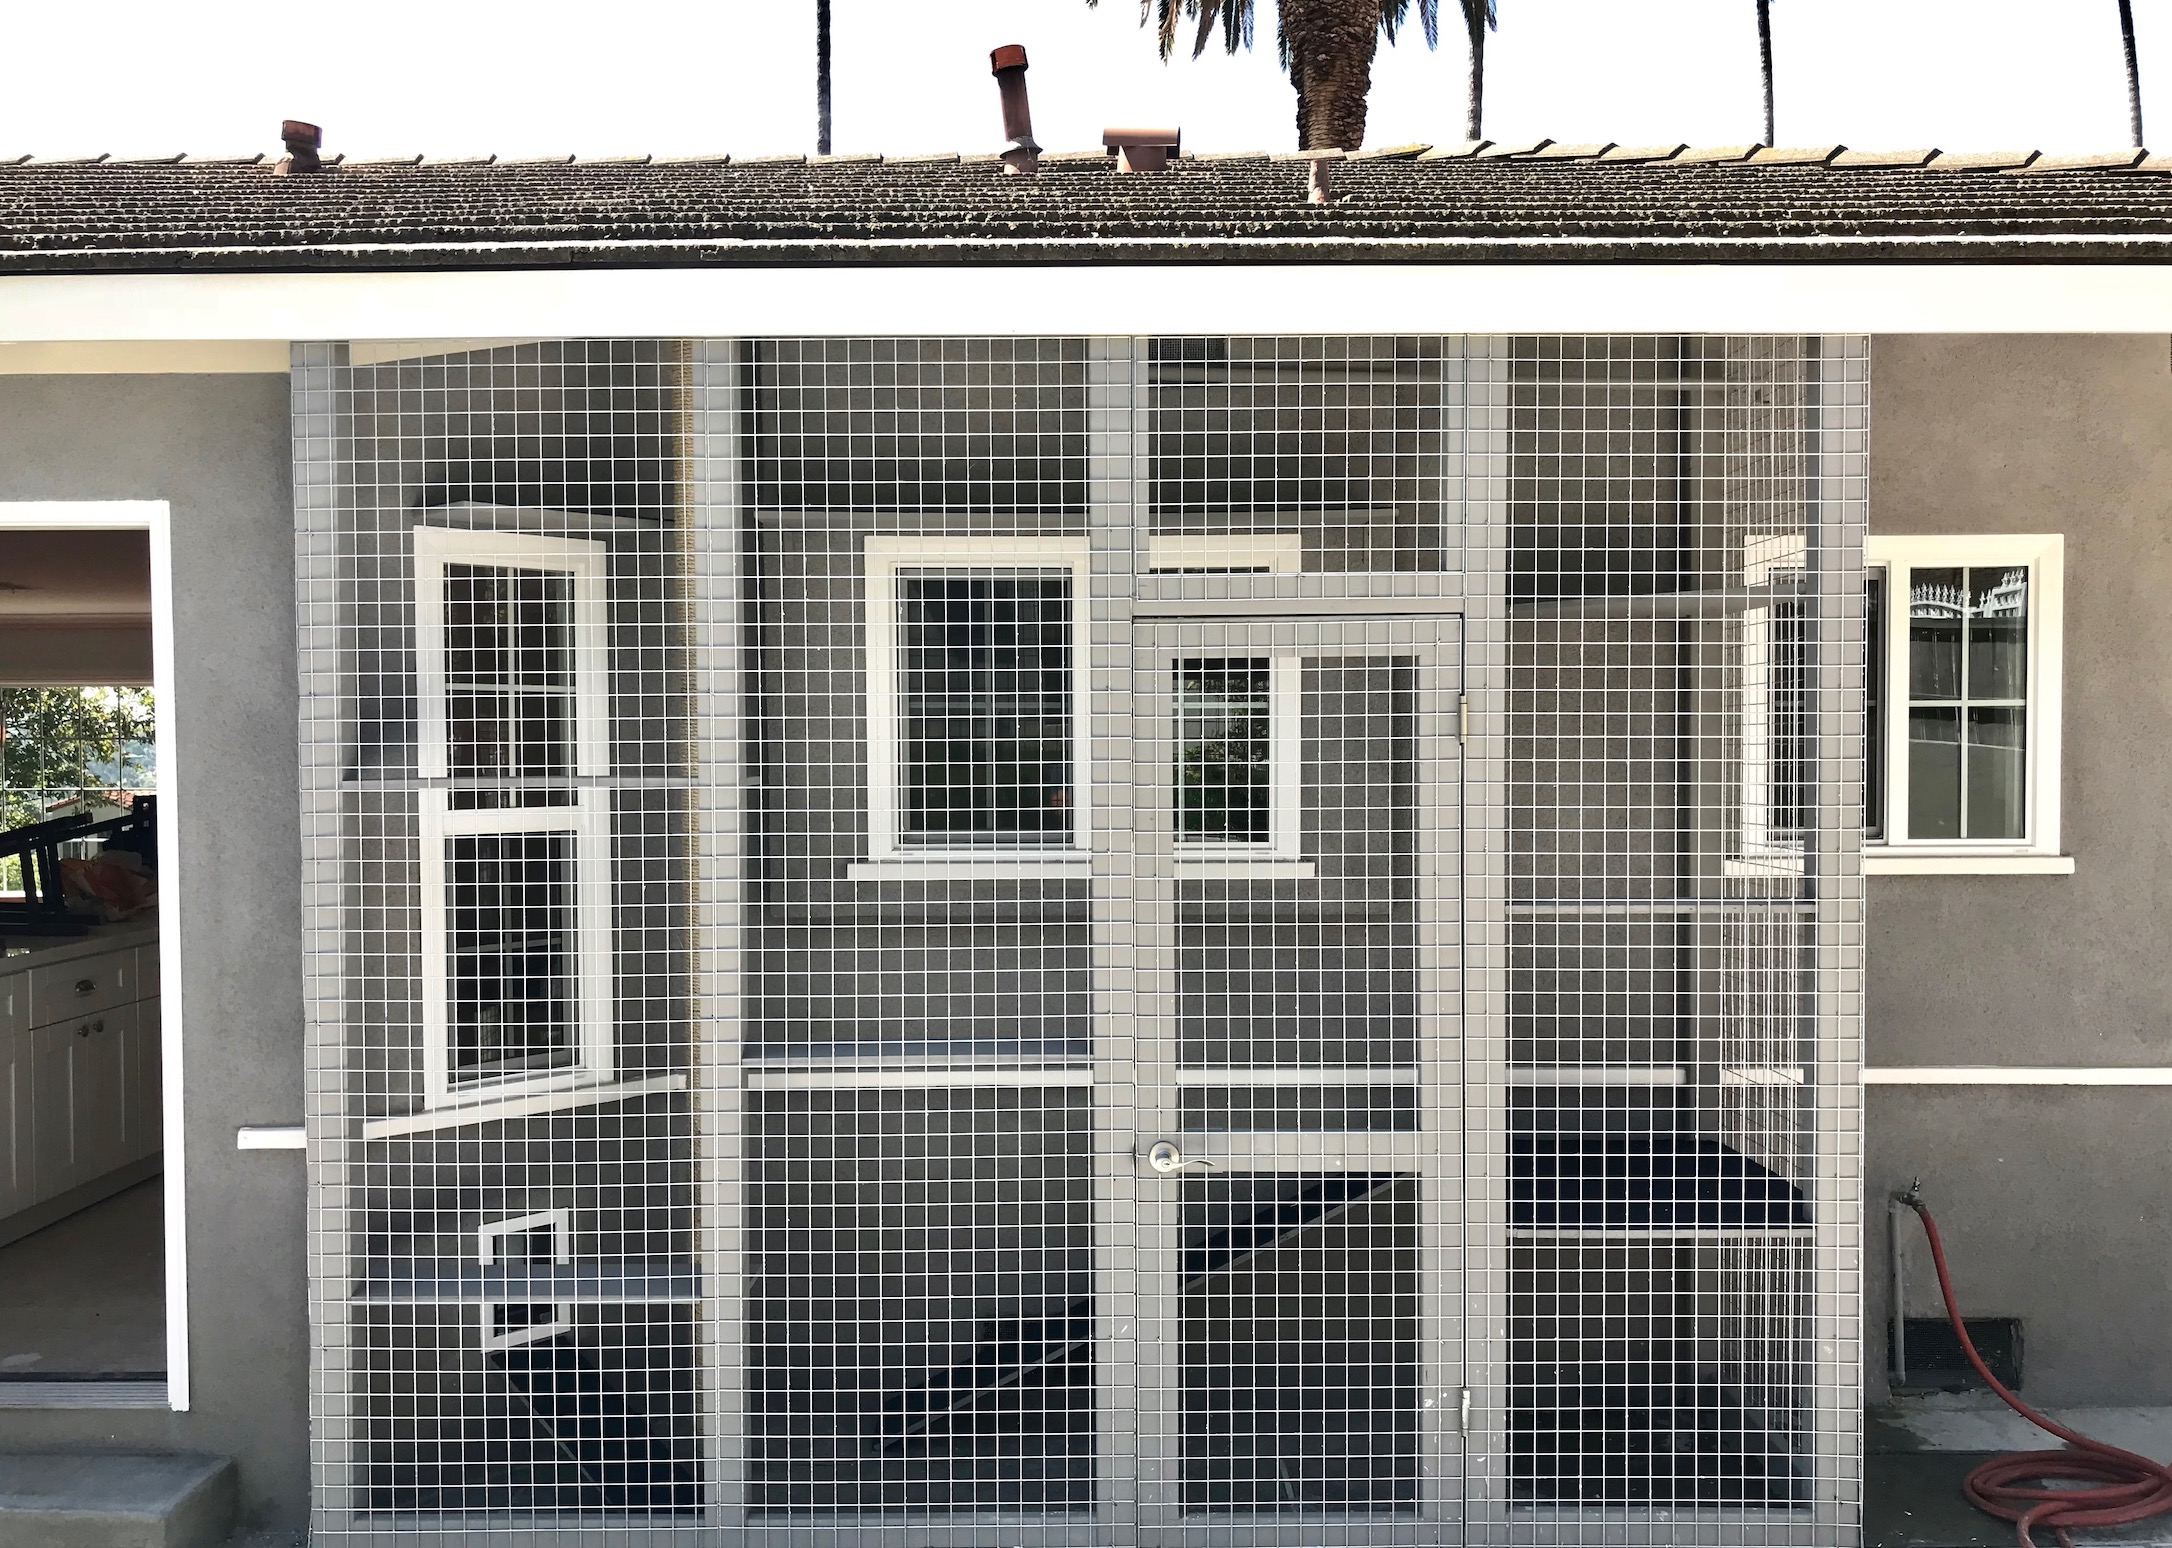 Eagle Rock Catio